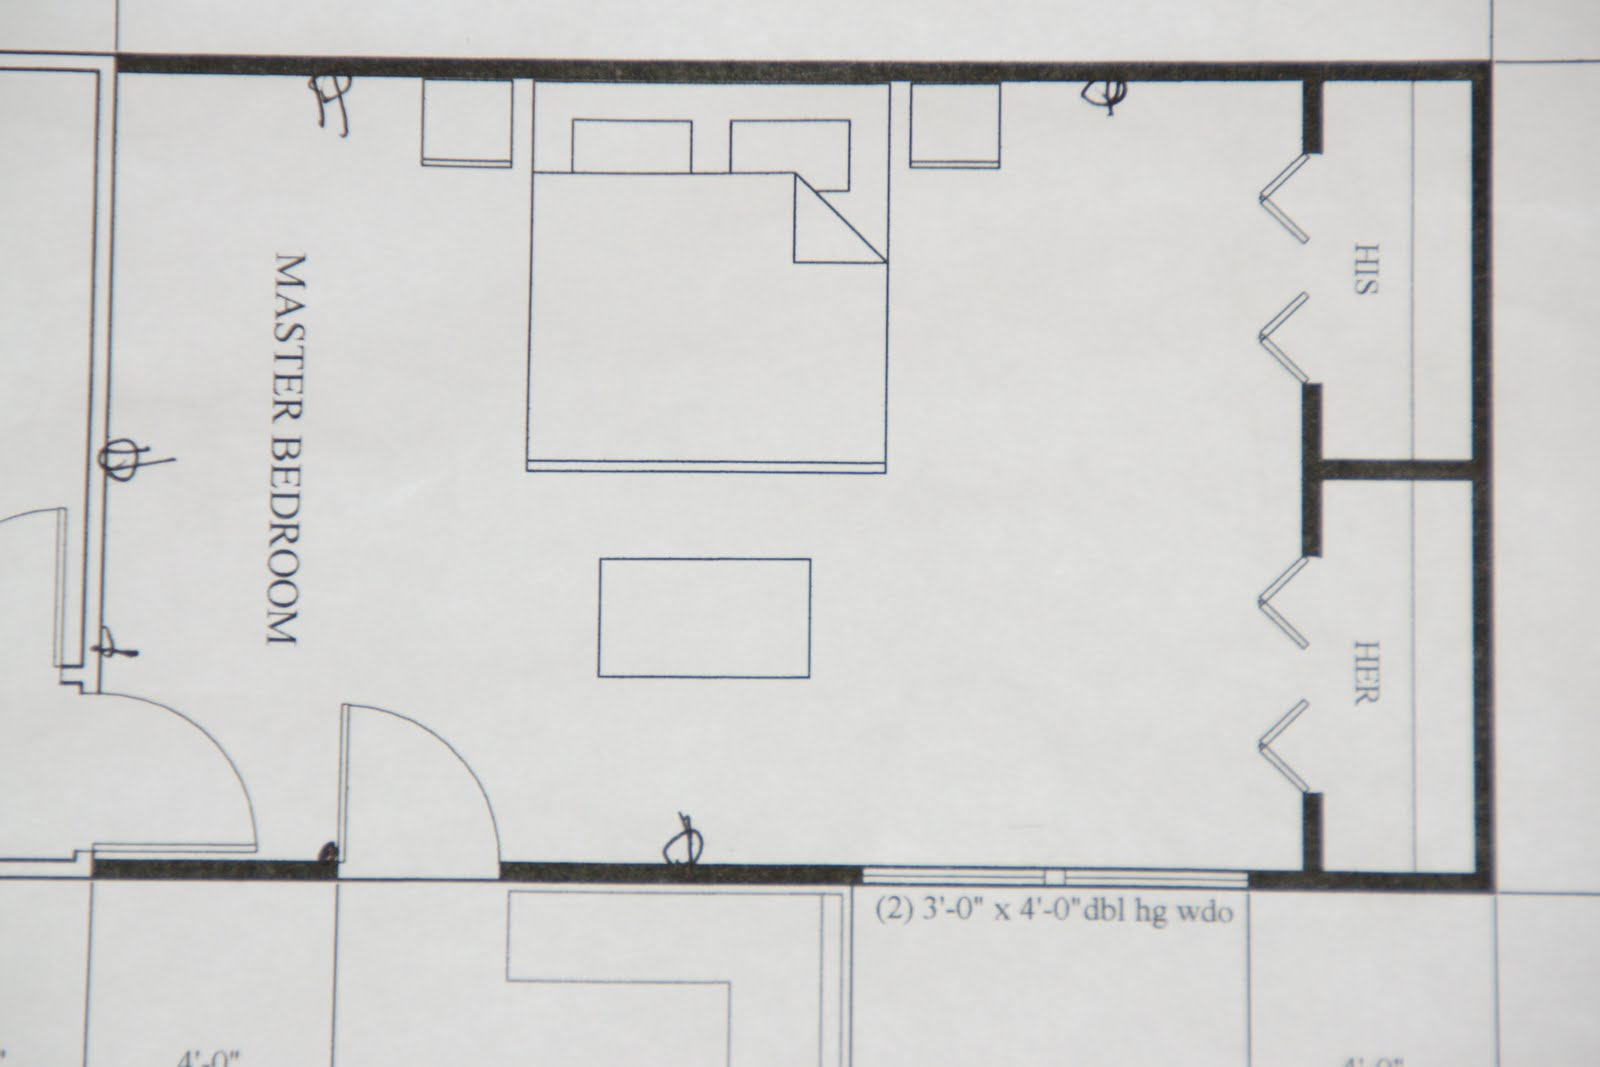 What 39 s new with the serranos master bedroom addition plans for Addition floor plans